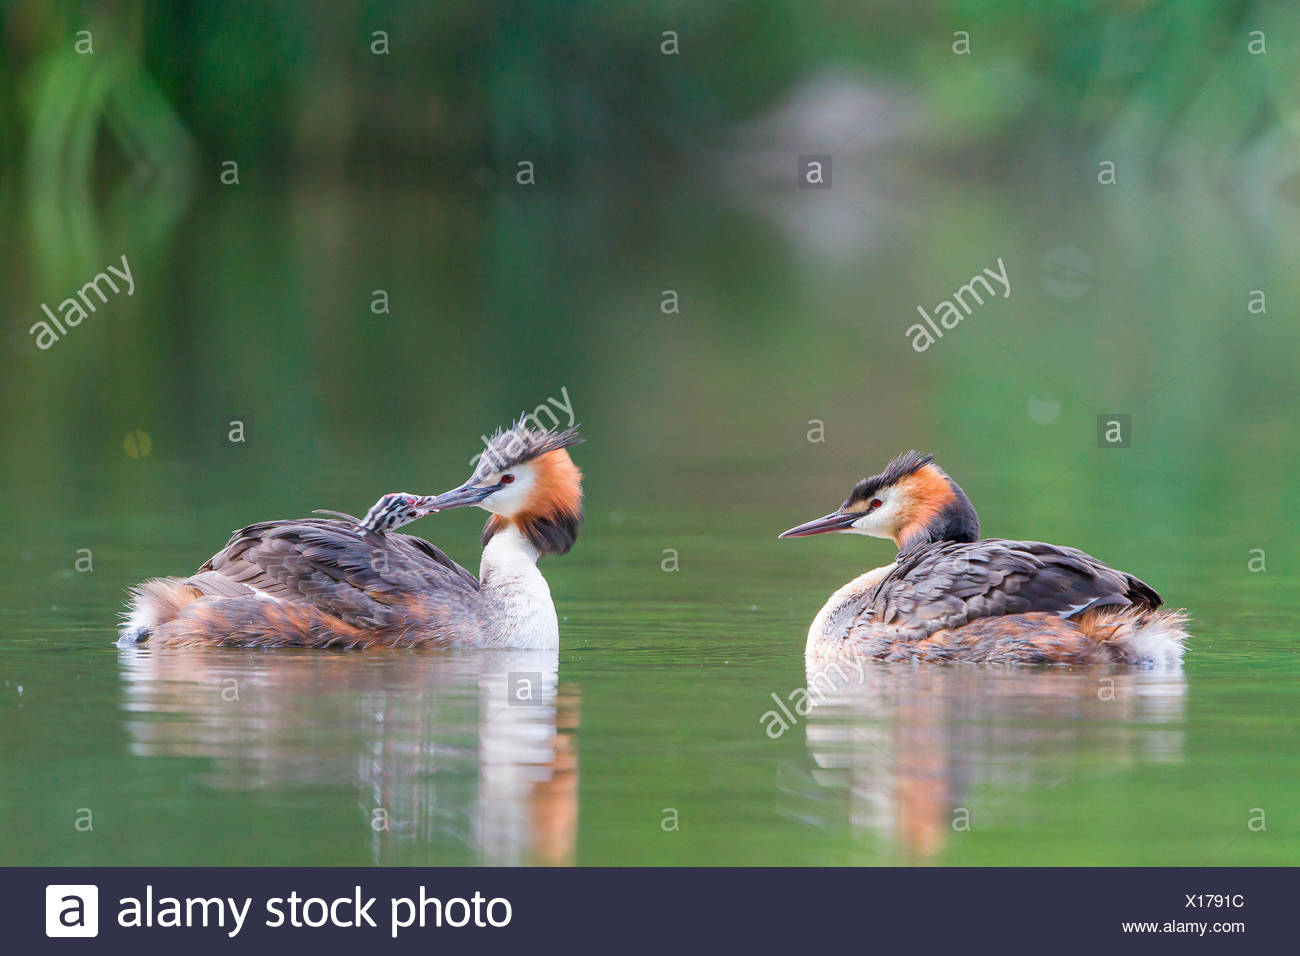 Great Crested Grebes (Podiceps cristatus) feeding a chick, North Hesse, Hesse, Germany - Stock Image